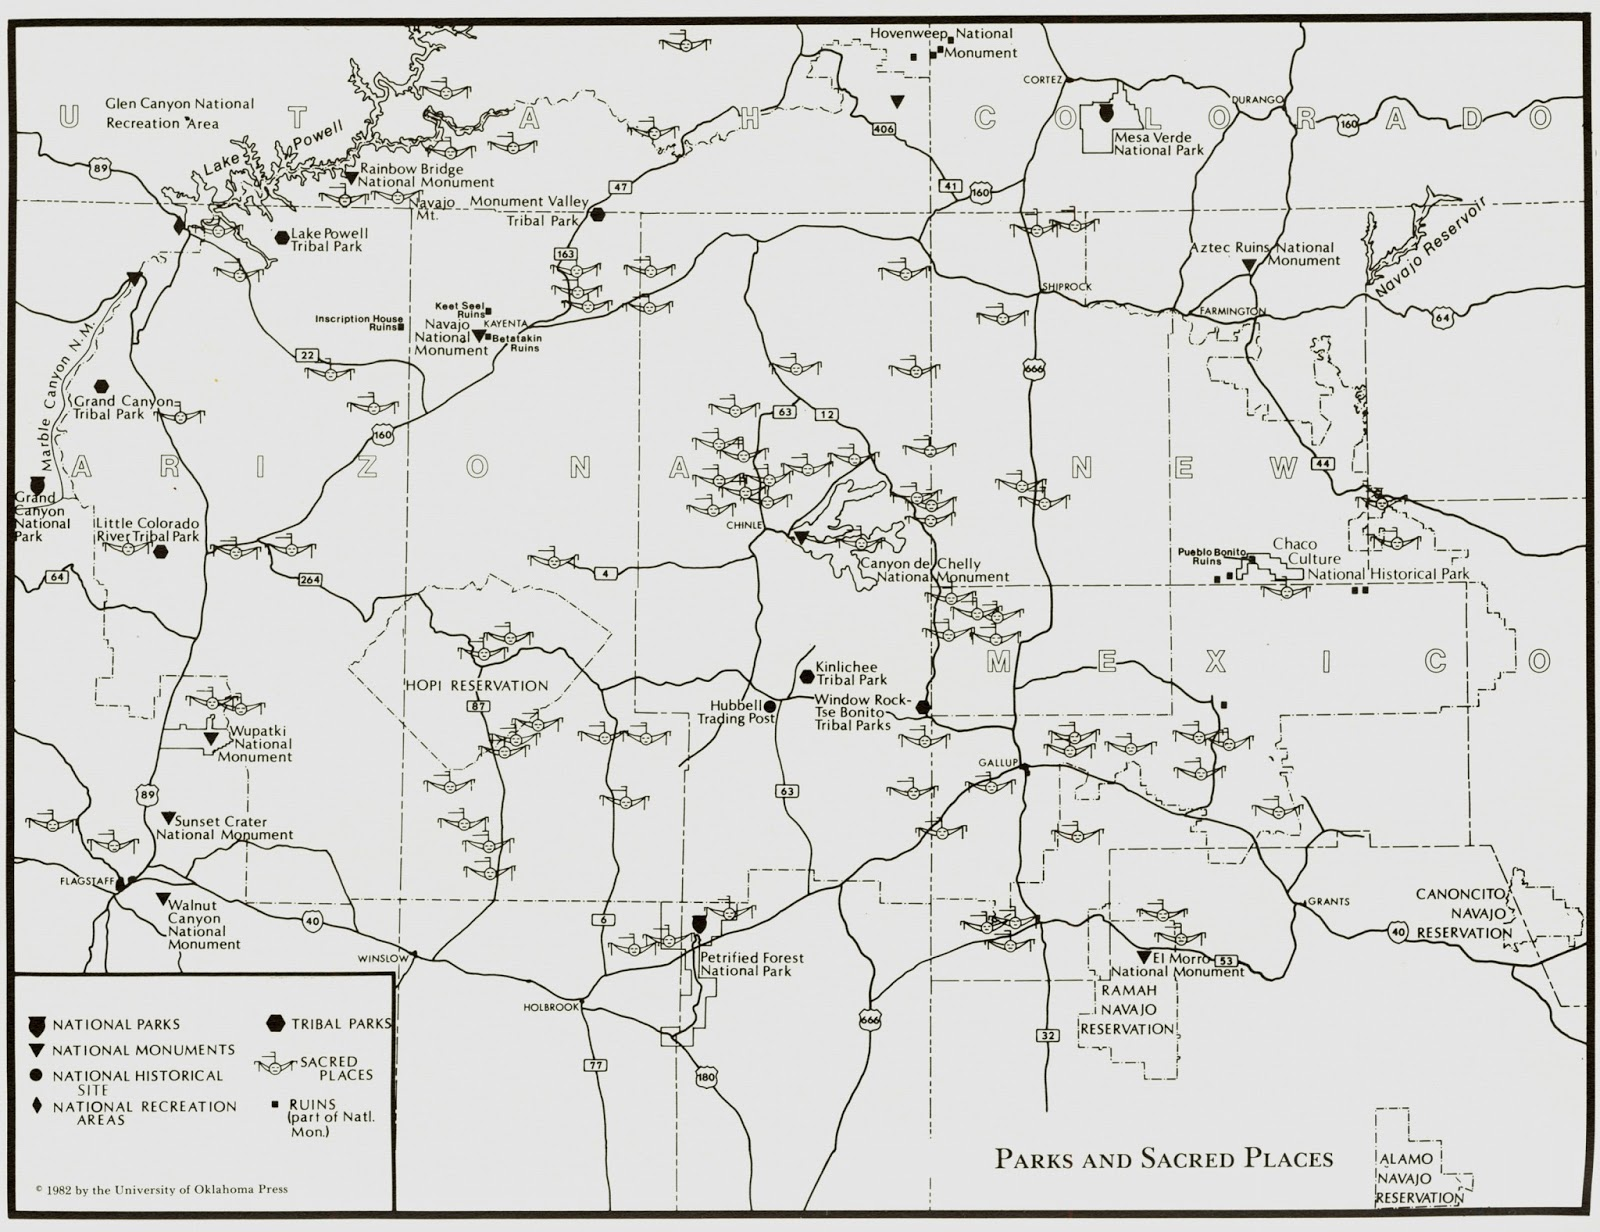 Gis Research And Map Collection Ball State University Libraries Atlas Collection Features Maps